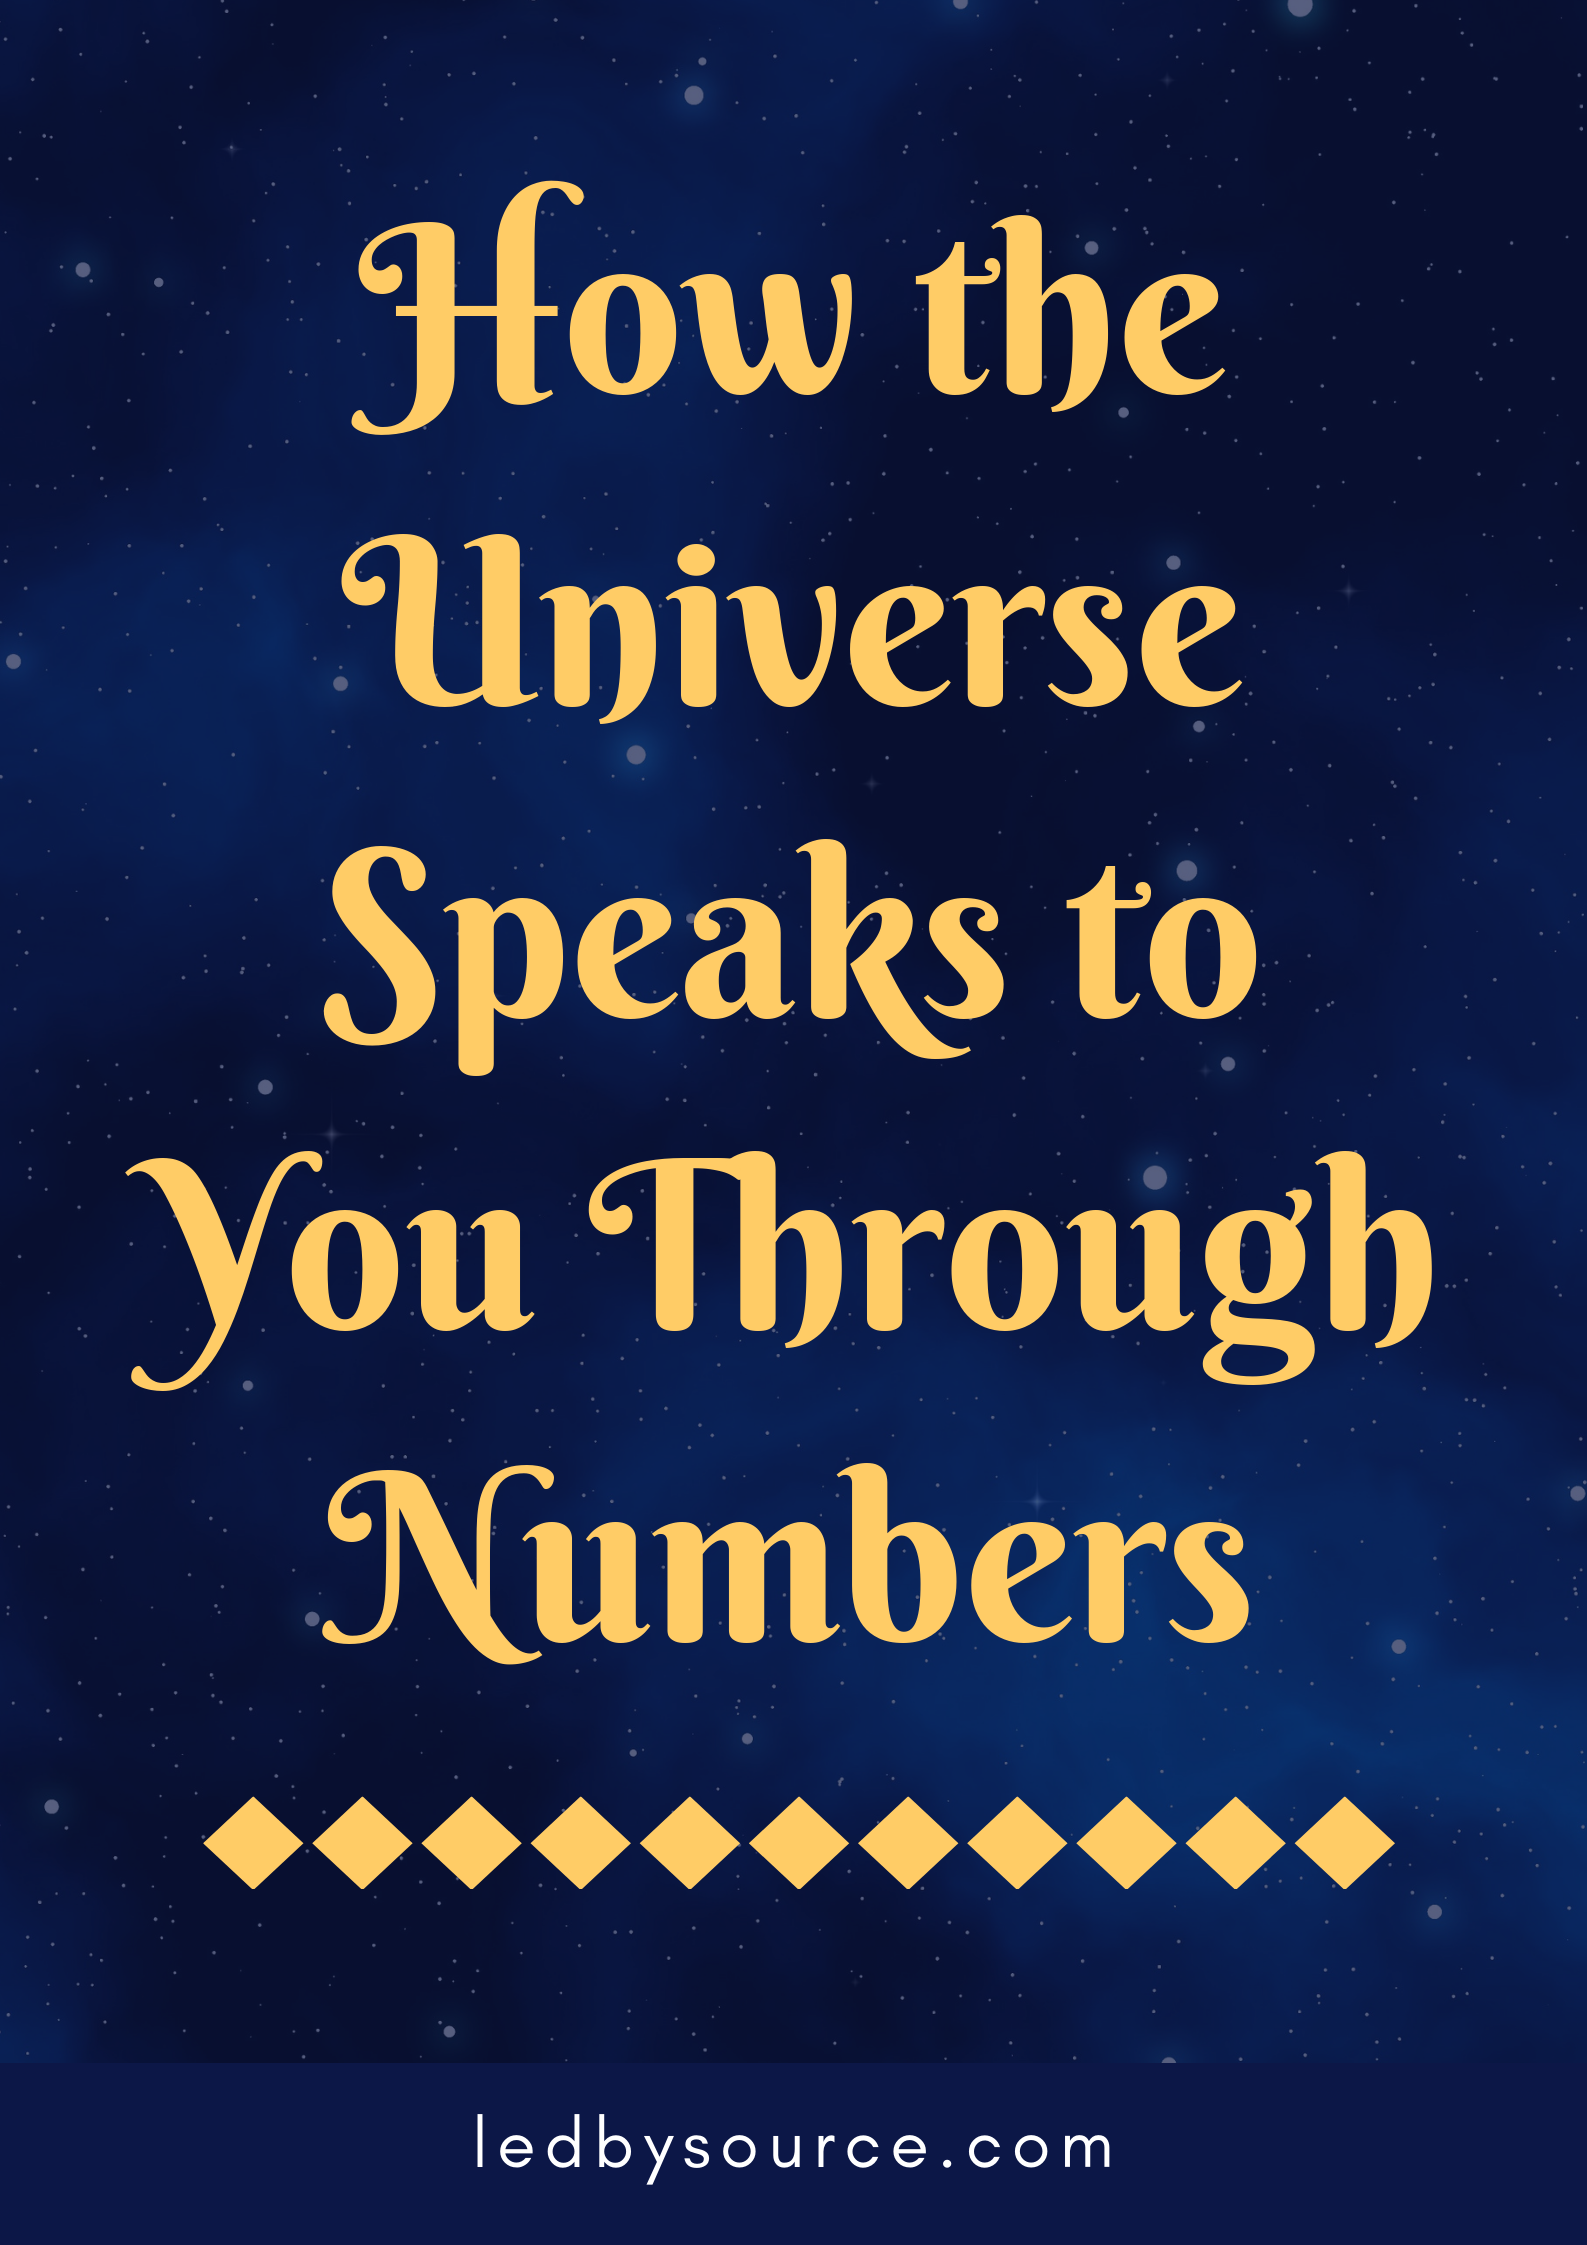 How the Universe Speaks to You Through Numbers